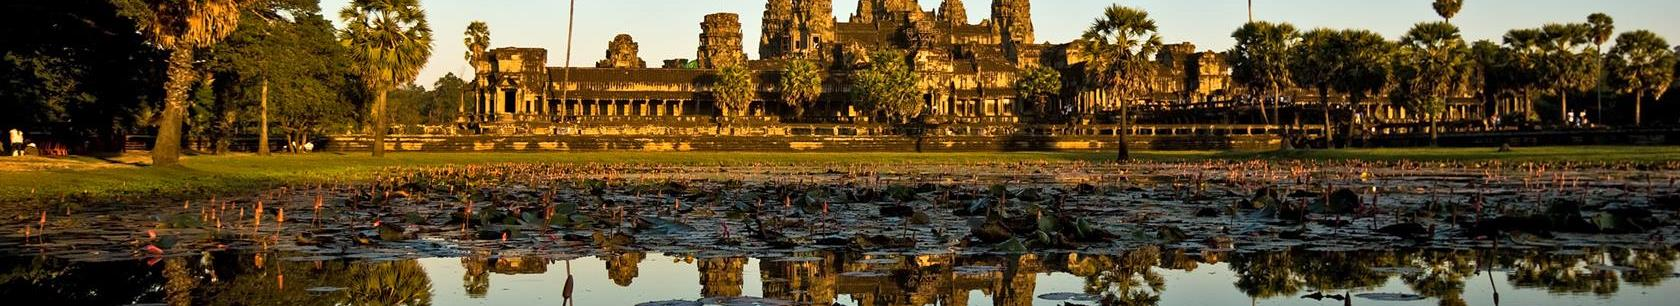 angkor-wat-temple-at-sunset